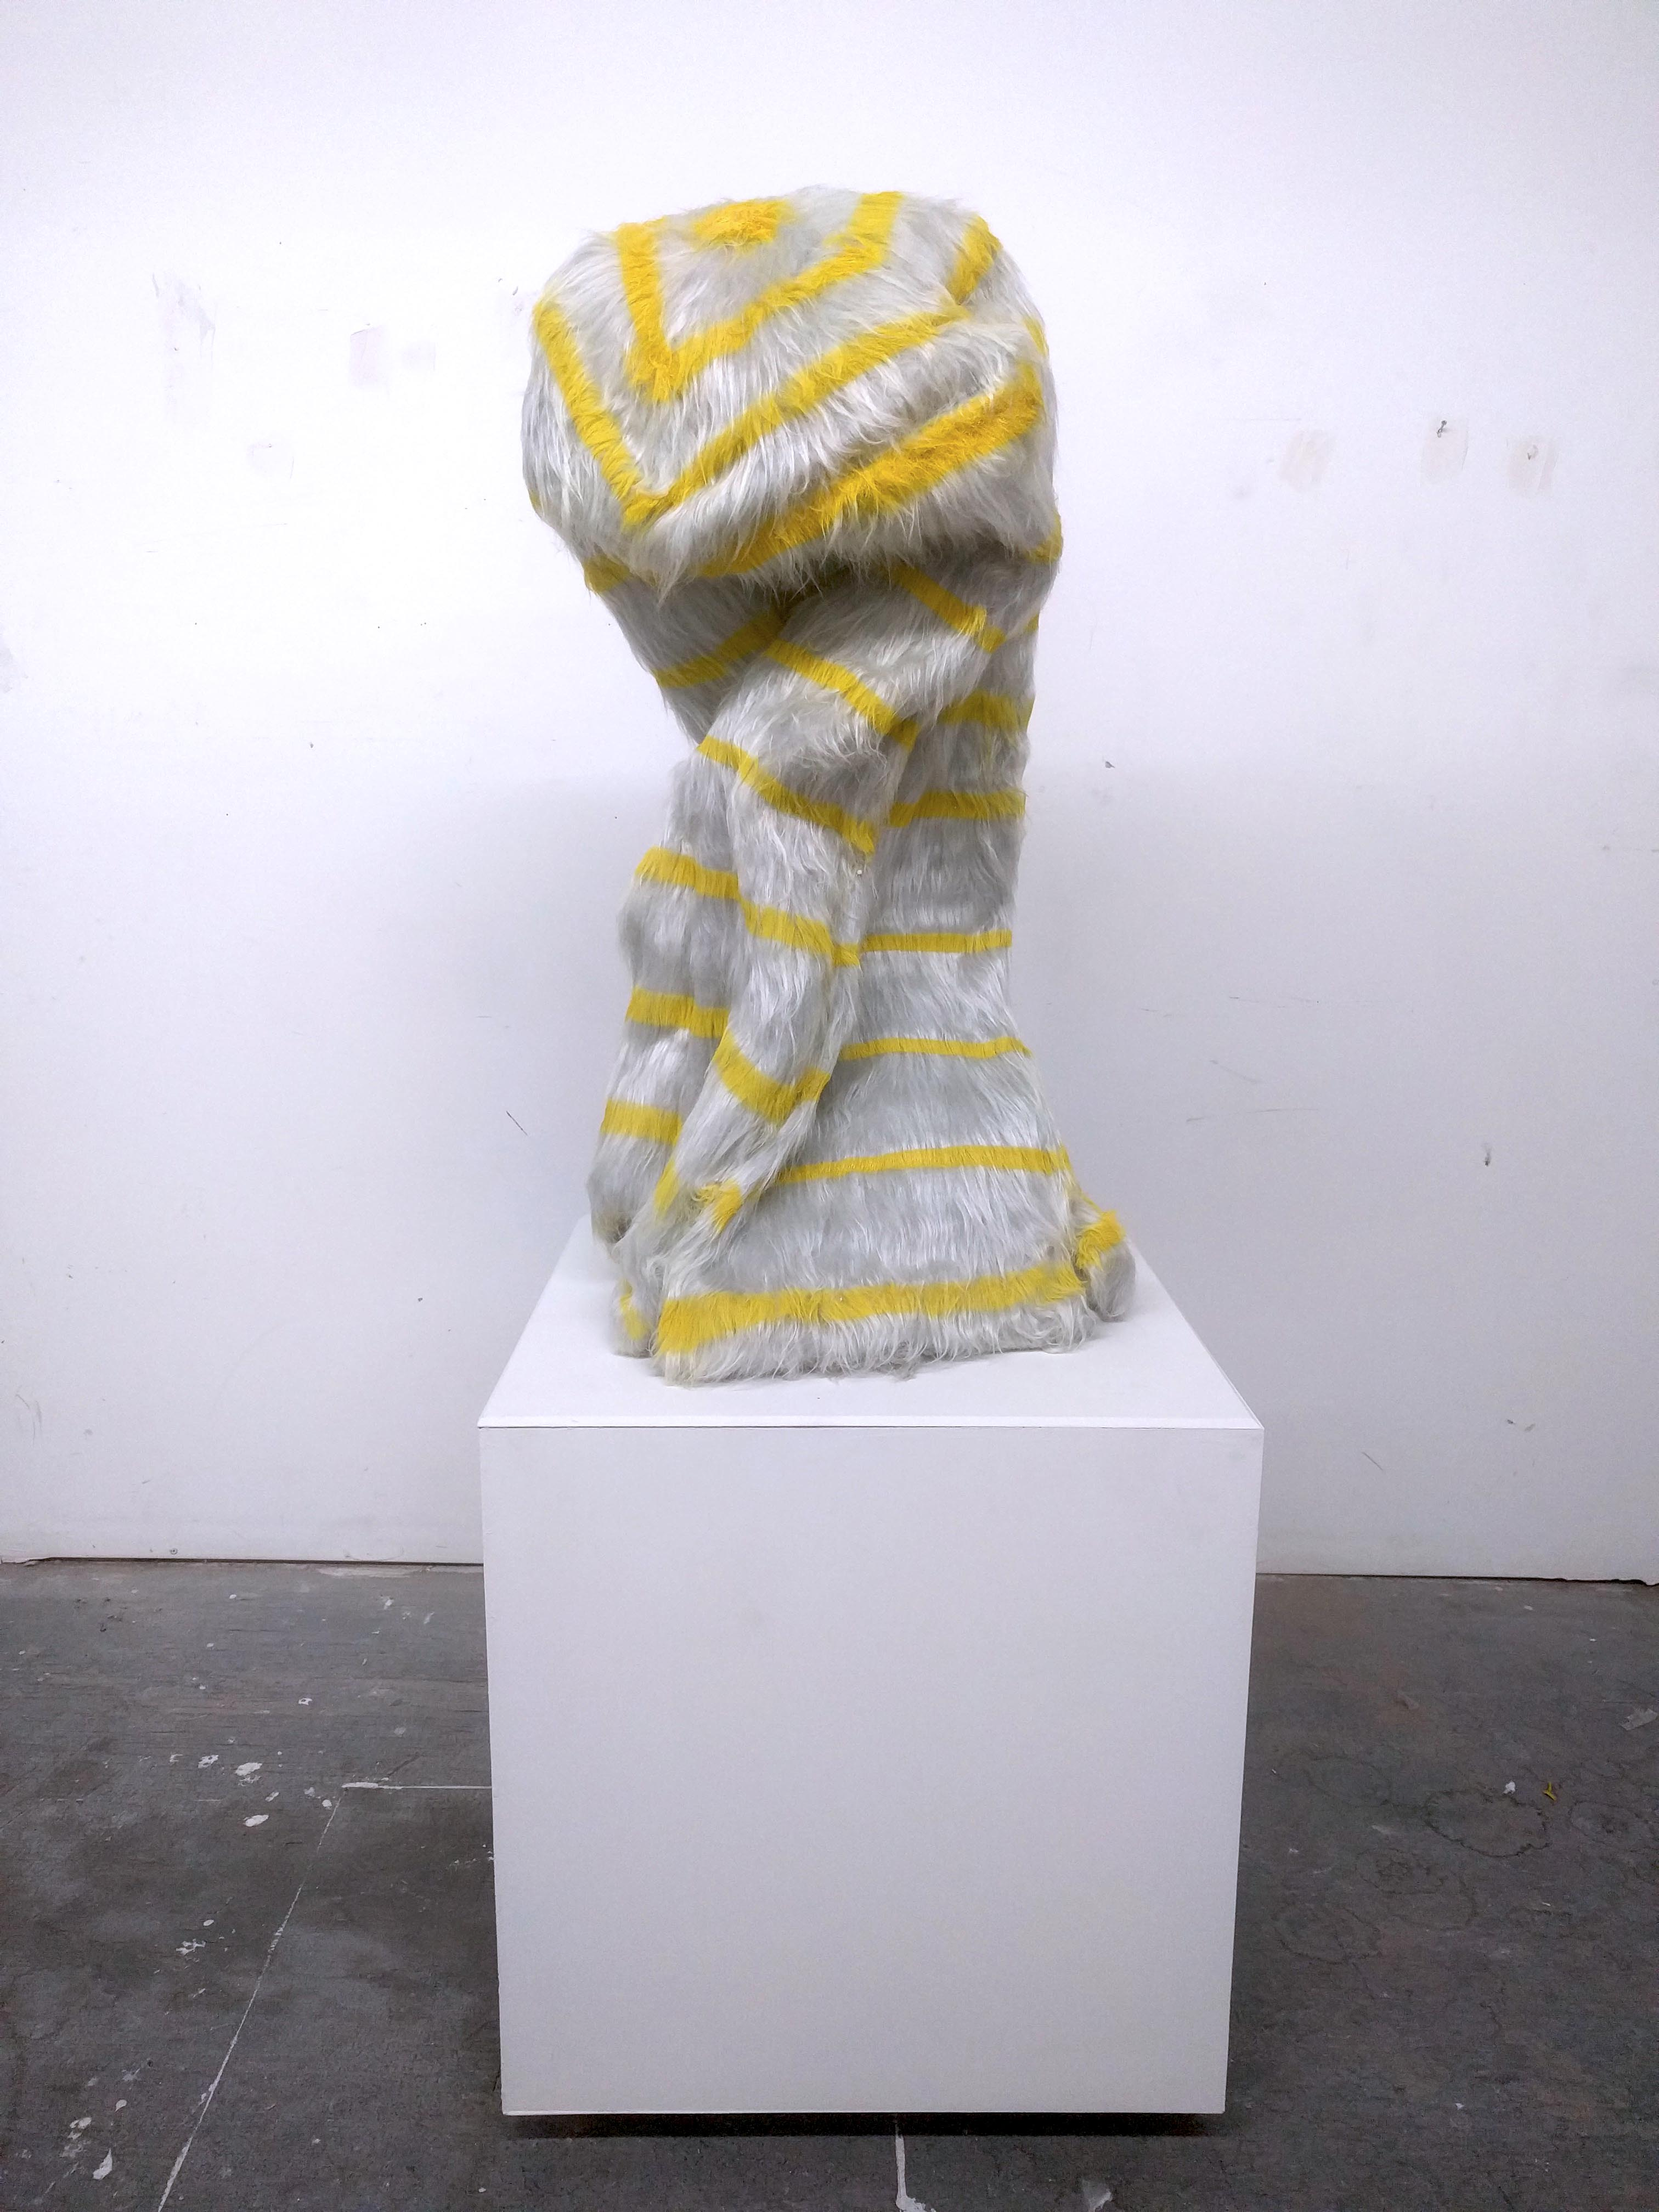 a gray fur figure with yellow stripes crushed in on itself